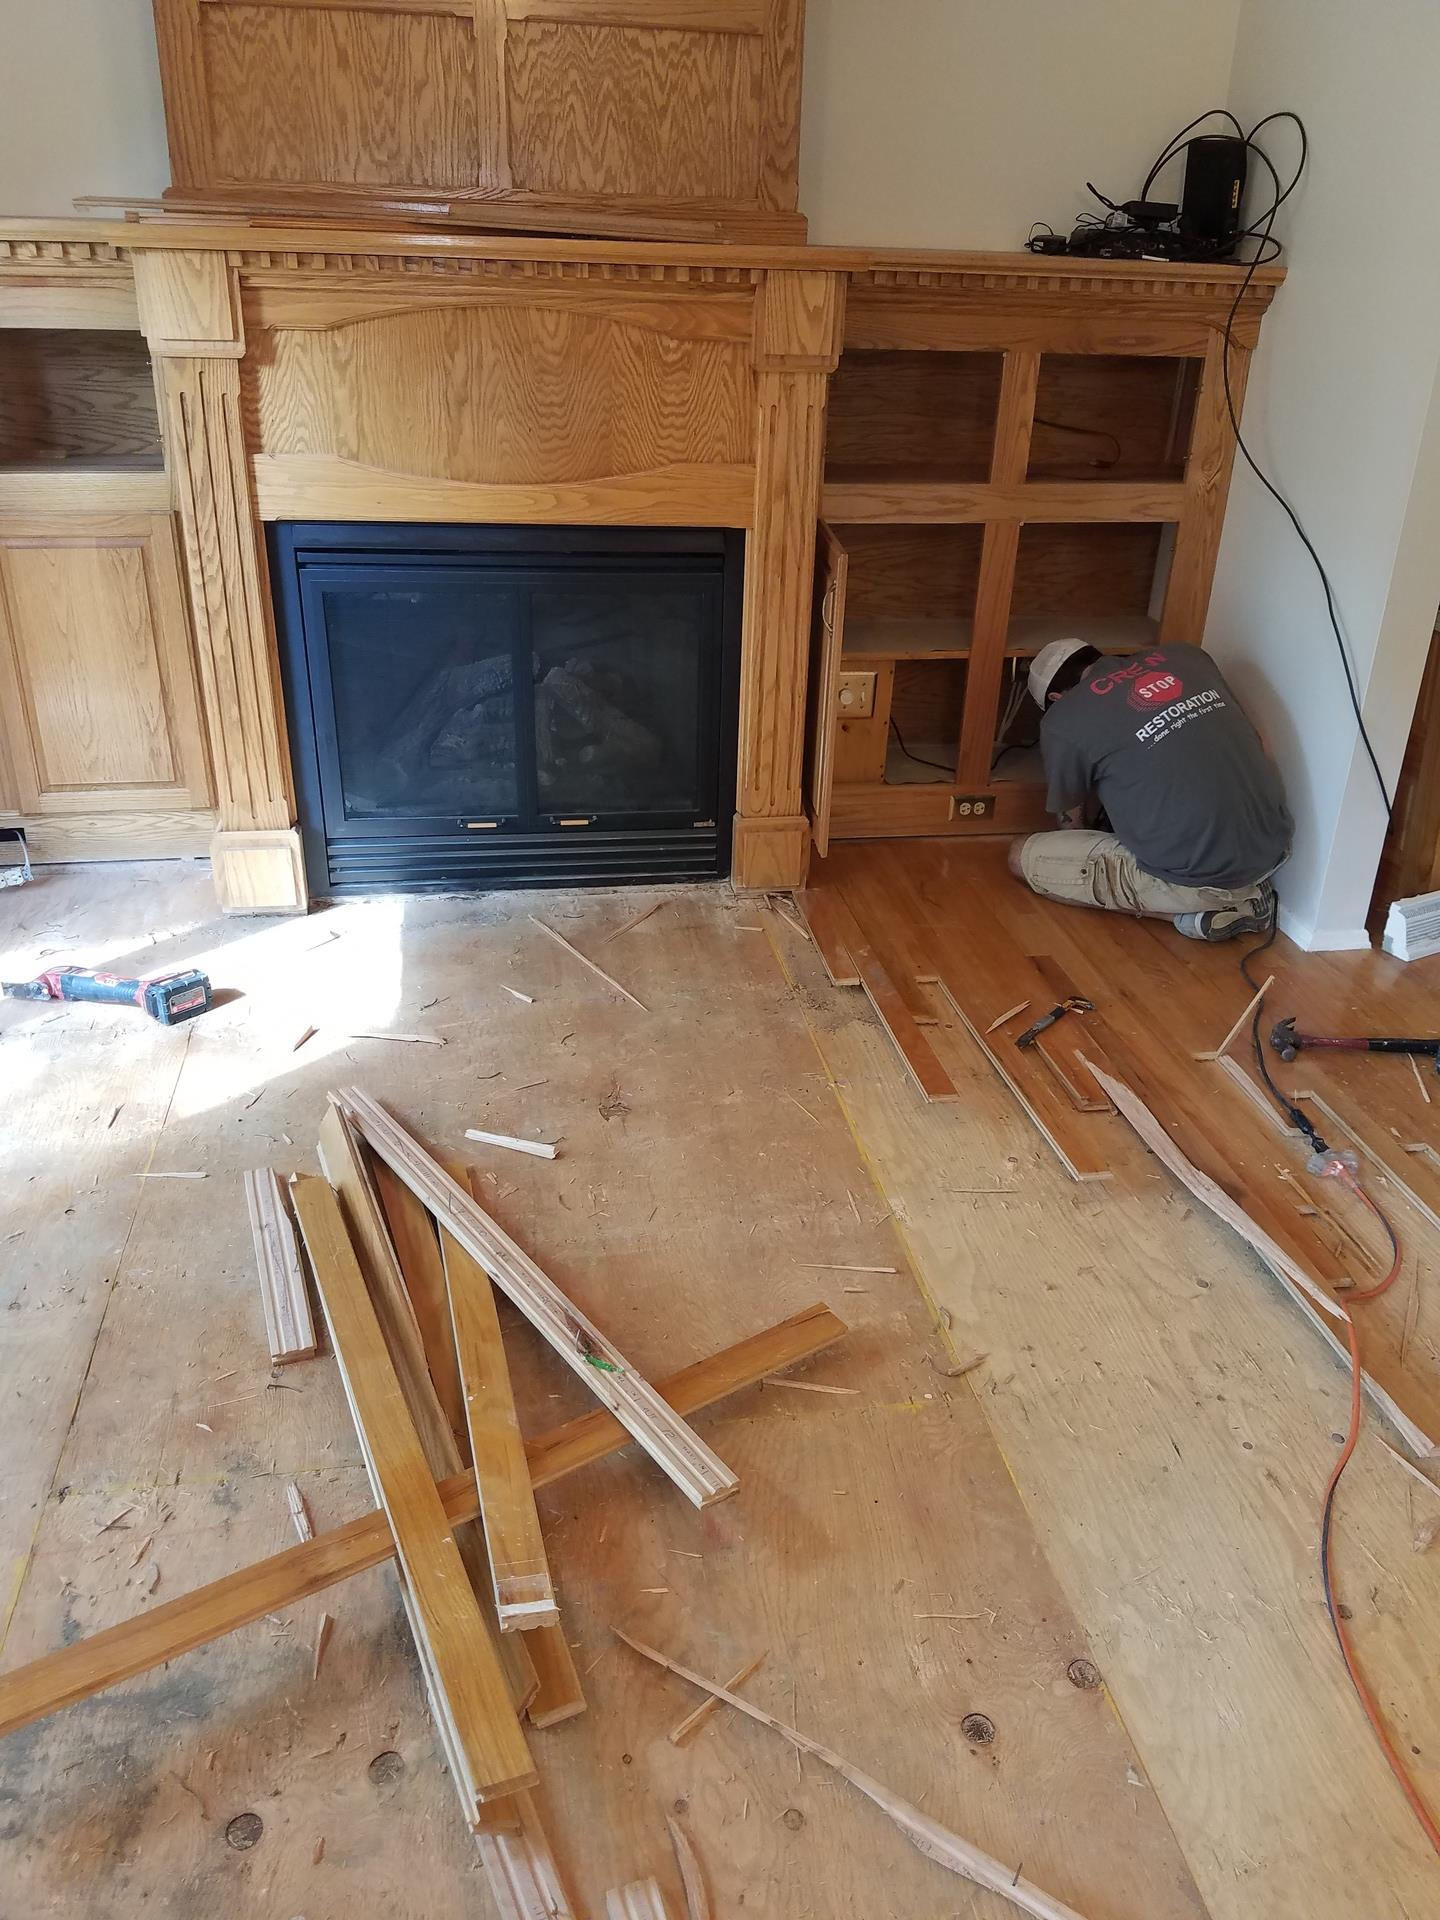 Floor boards being stripped